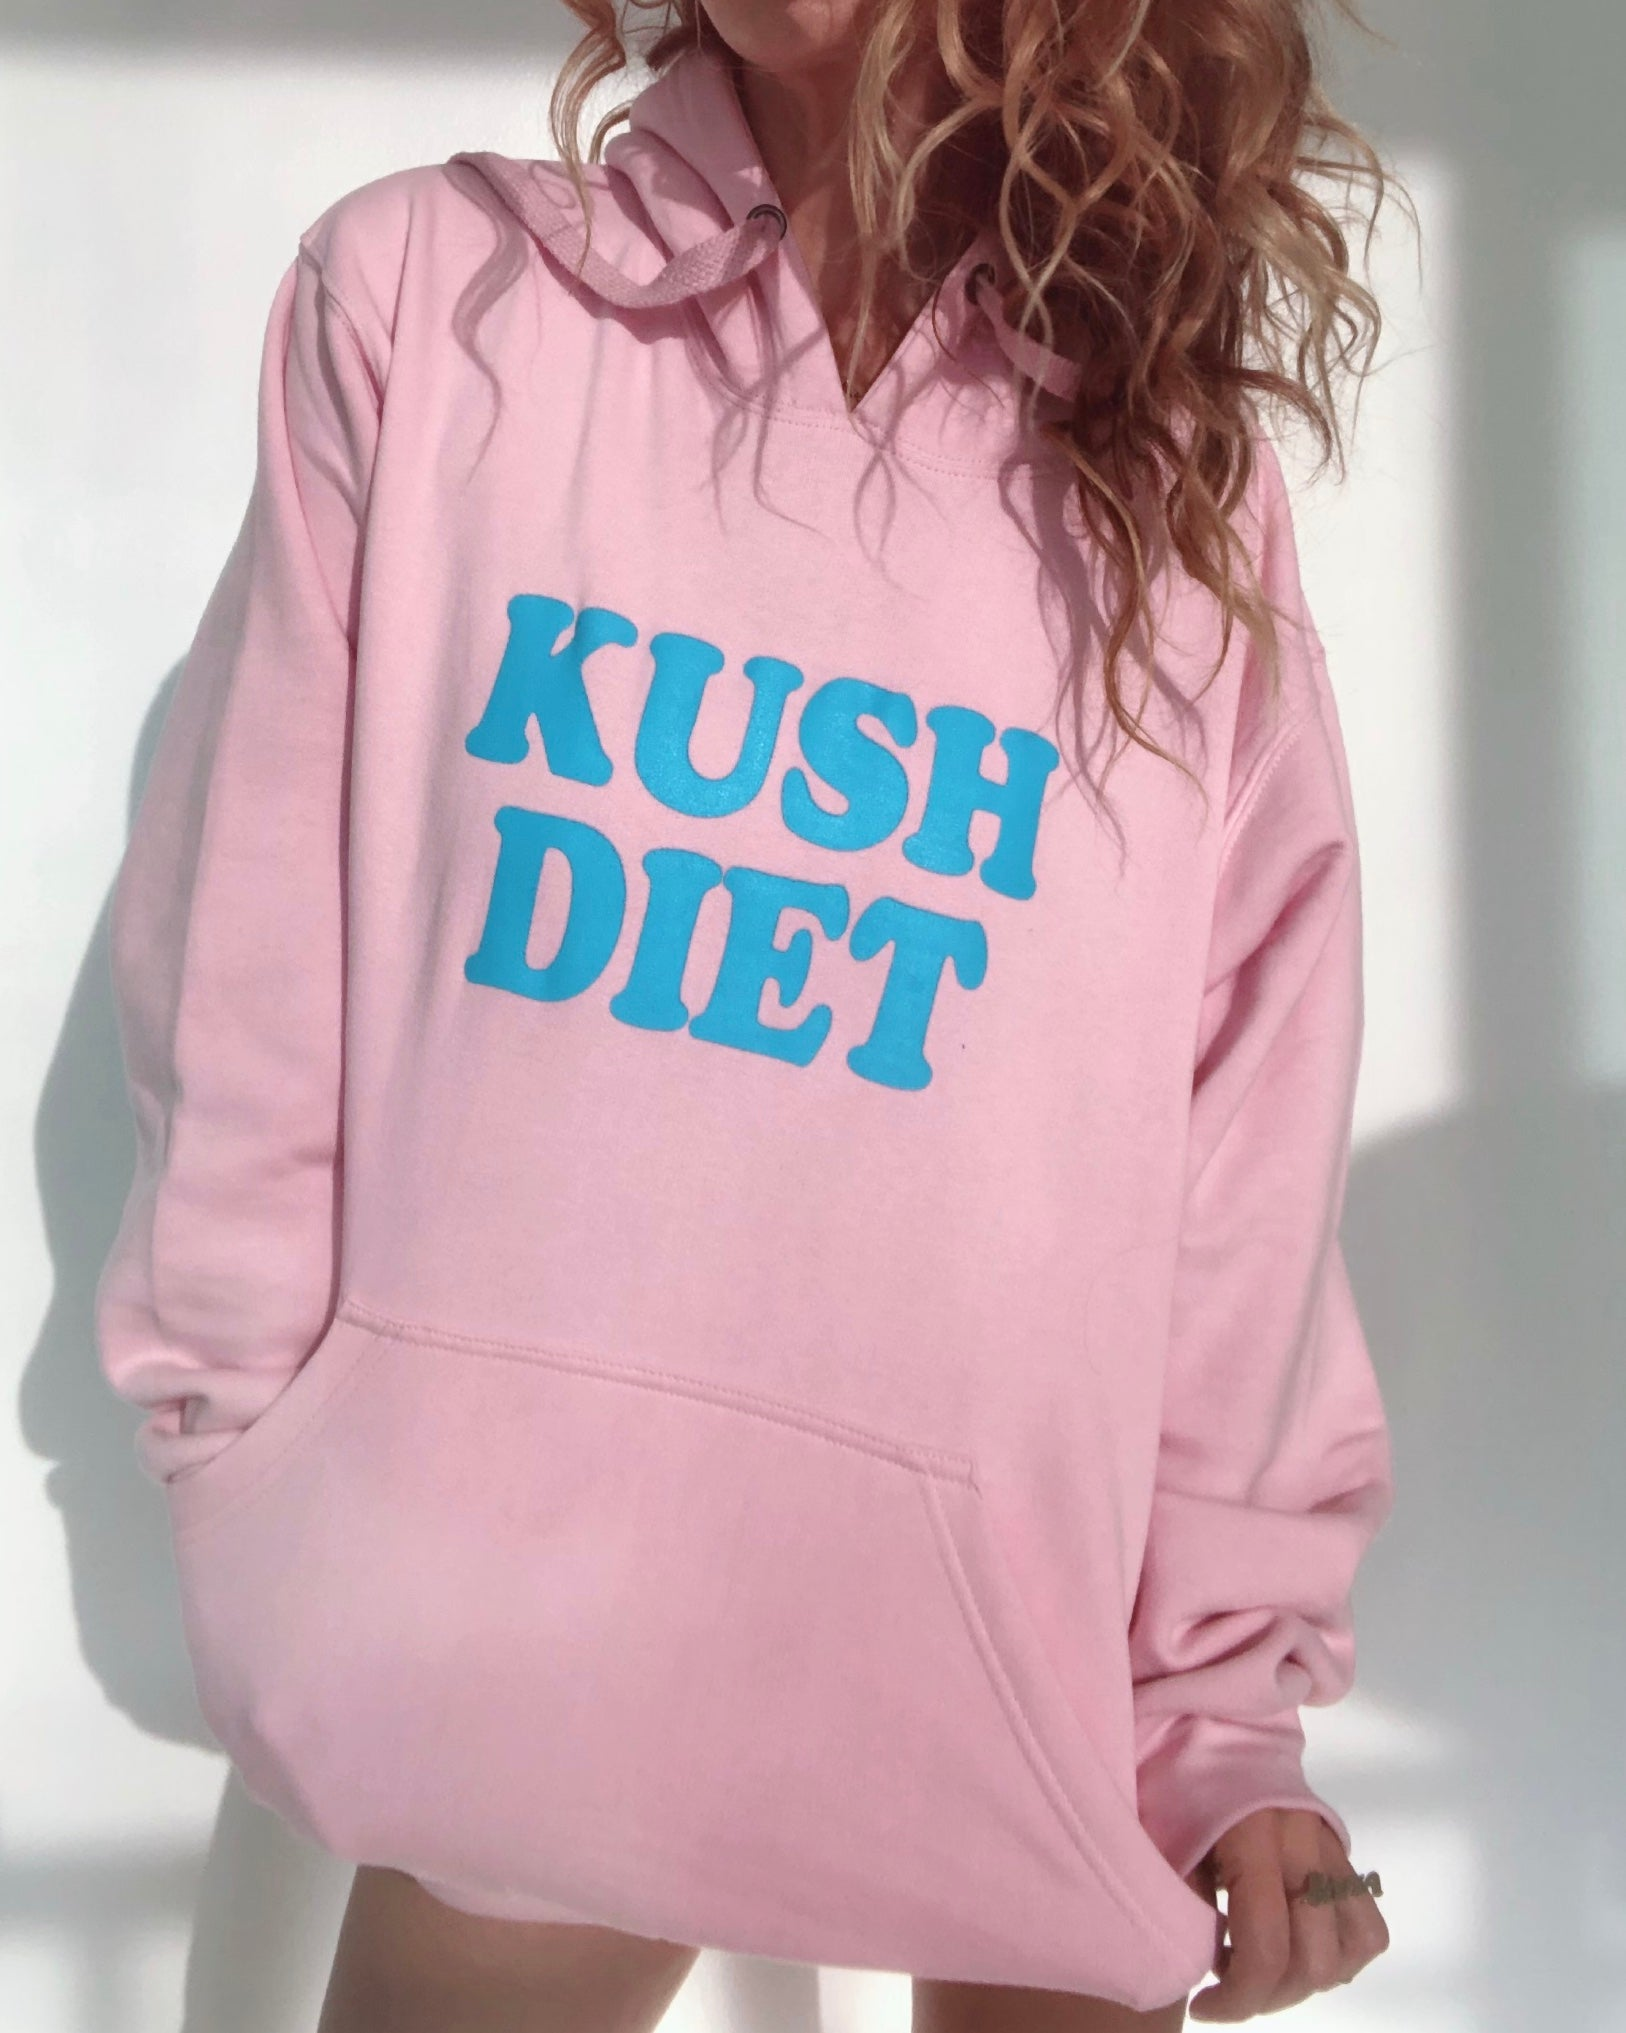 HIGHTEA.life Flower Culture - KUSHDIET Hoodie (Pink)